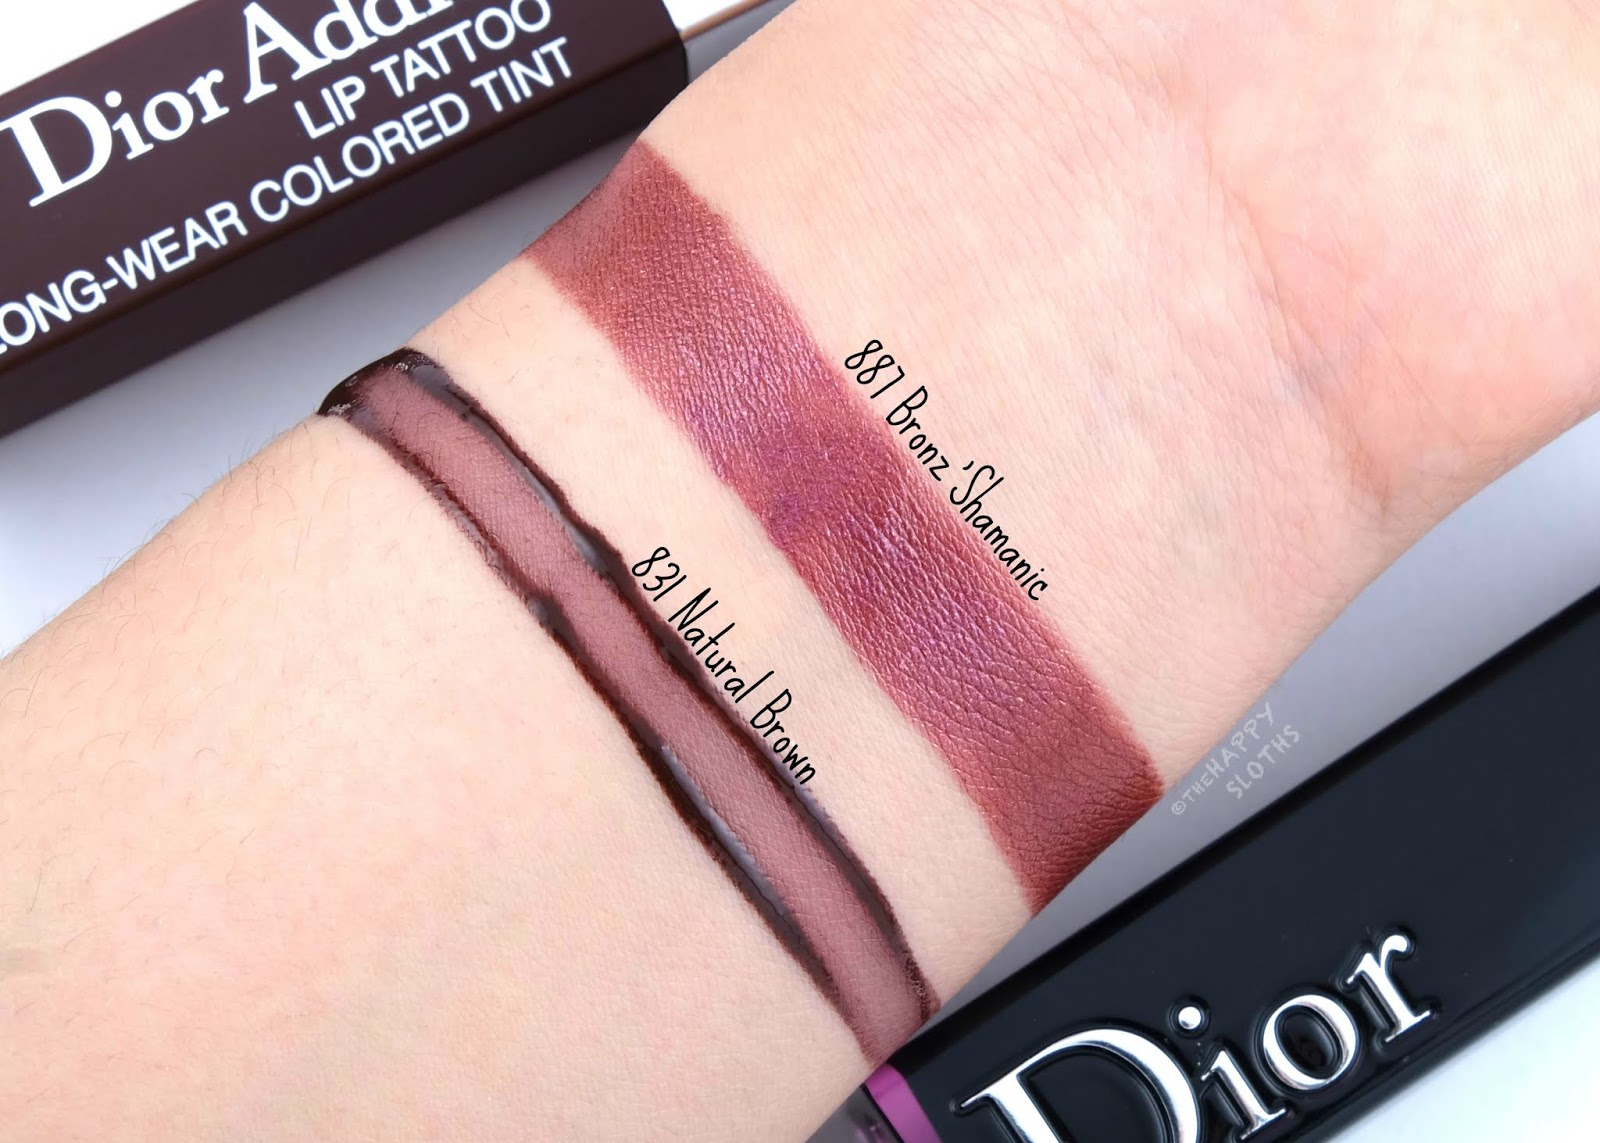 "Dior Summer 2019 Wild Earth Collection | Dior Addict Lacquer Stick in ""887 Bronz'Shamanic"" & Dior Addict Lip Tattoo in ""831 Natural Brown"": Review and Swatches"